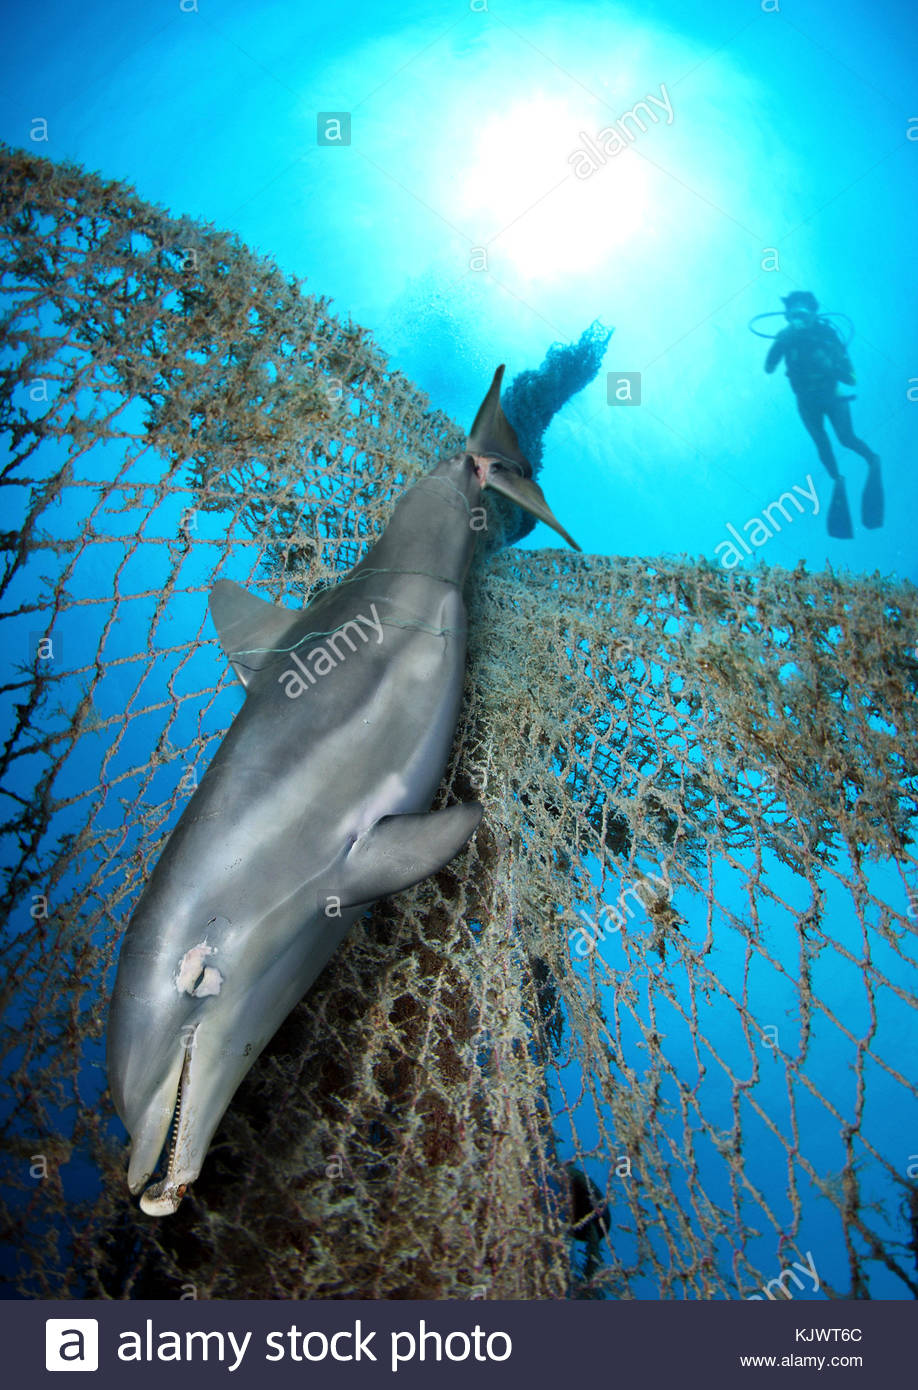 Dead Bottlenose dolphin, Tursiops truncatus, entangled on nylon ropes and lost fishing net. Nylon cables and nets - Stock Image